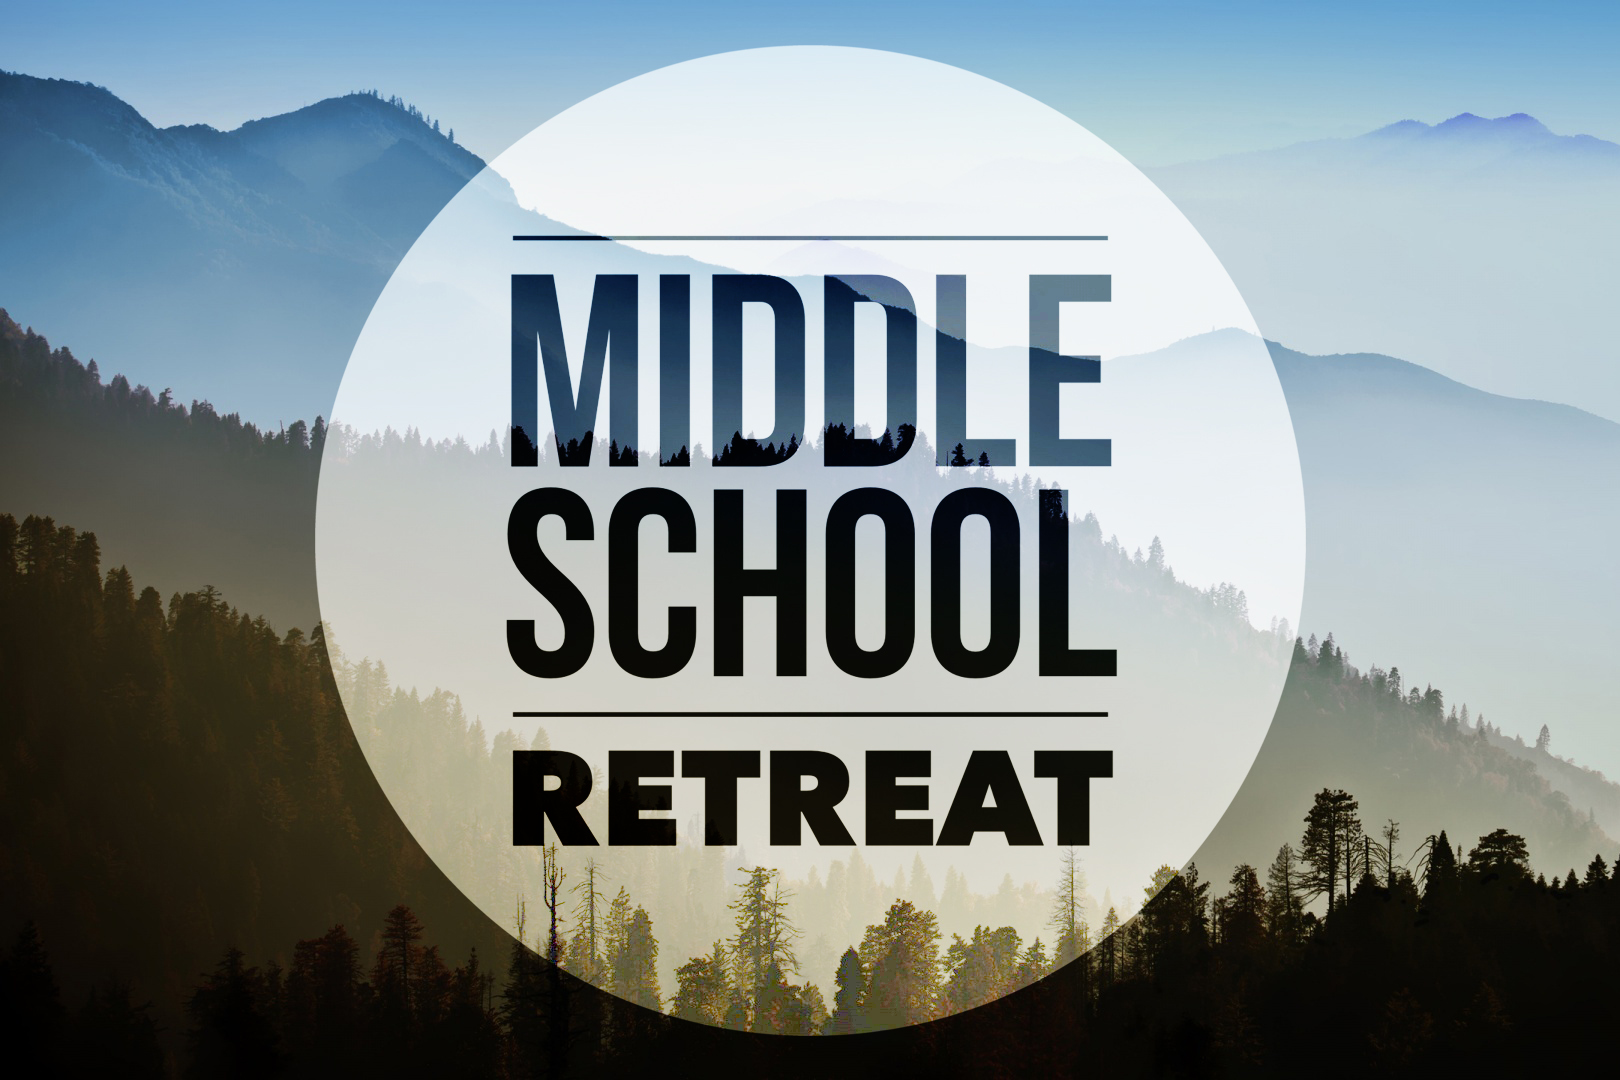 First youth middle school retreat Jan 27-29